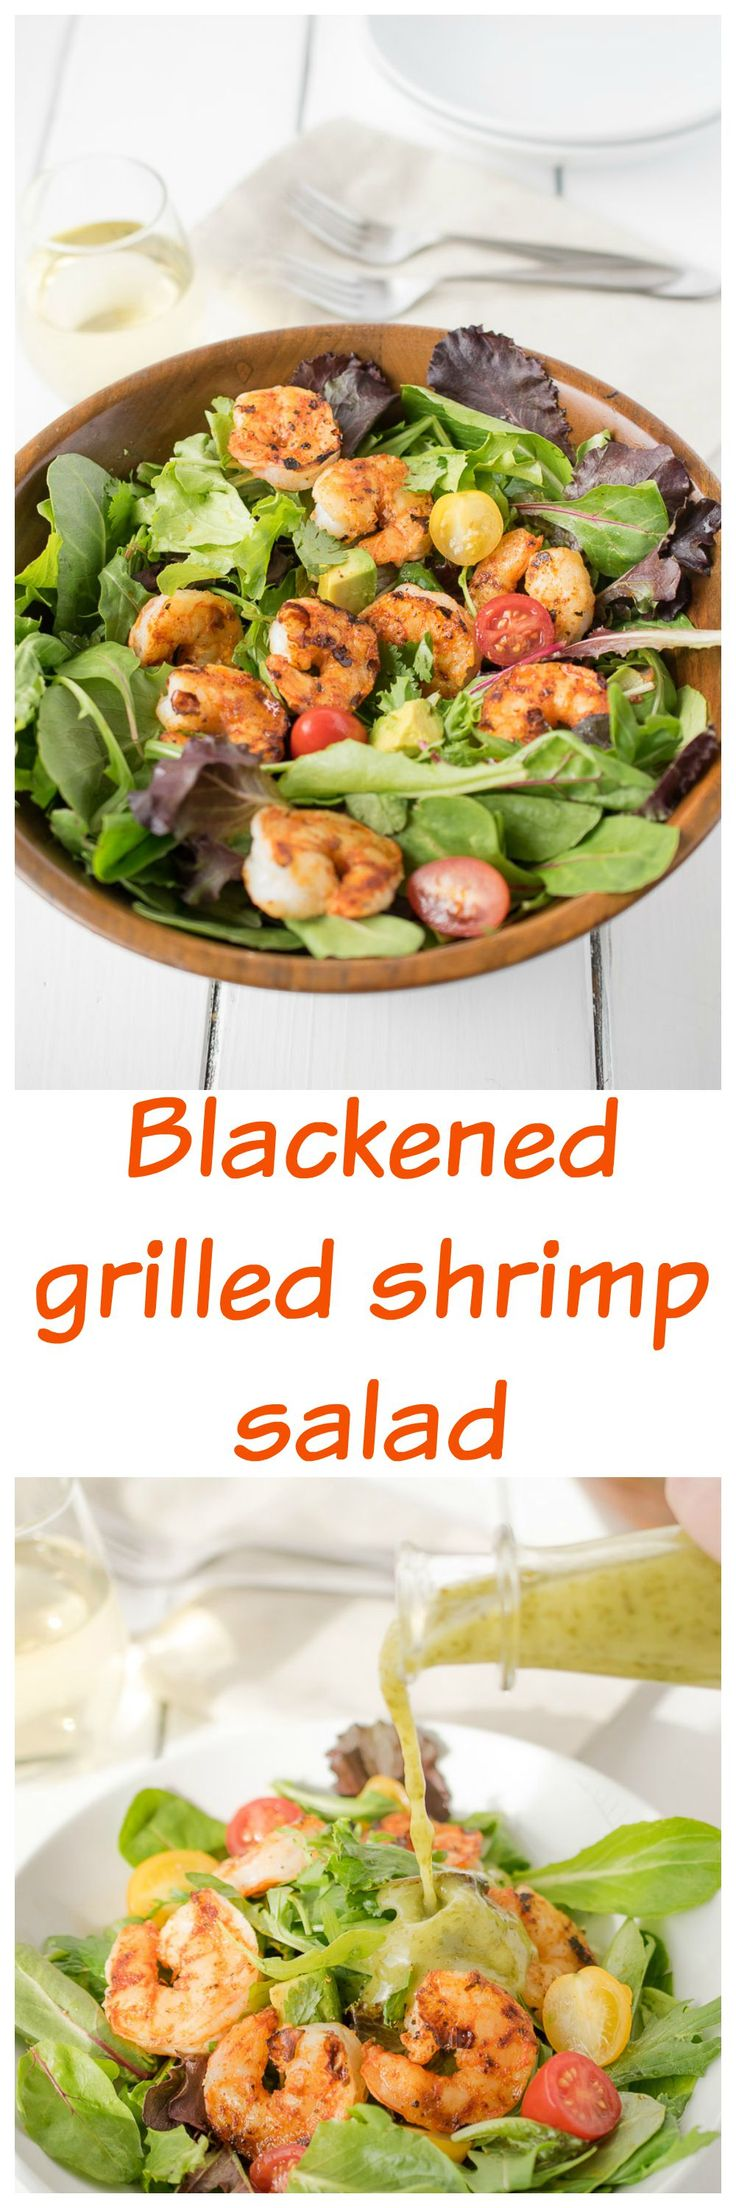 Blackened grilled shrimp salad. A simple, yet flavorful Spring & Summer salad. Blackened grilled shrimp salad is tossed with a light and fresh tasting cilantro lime dressing